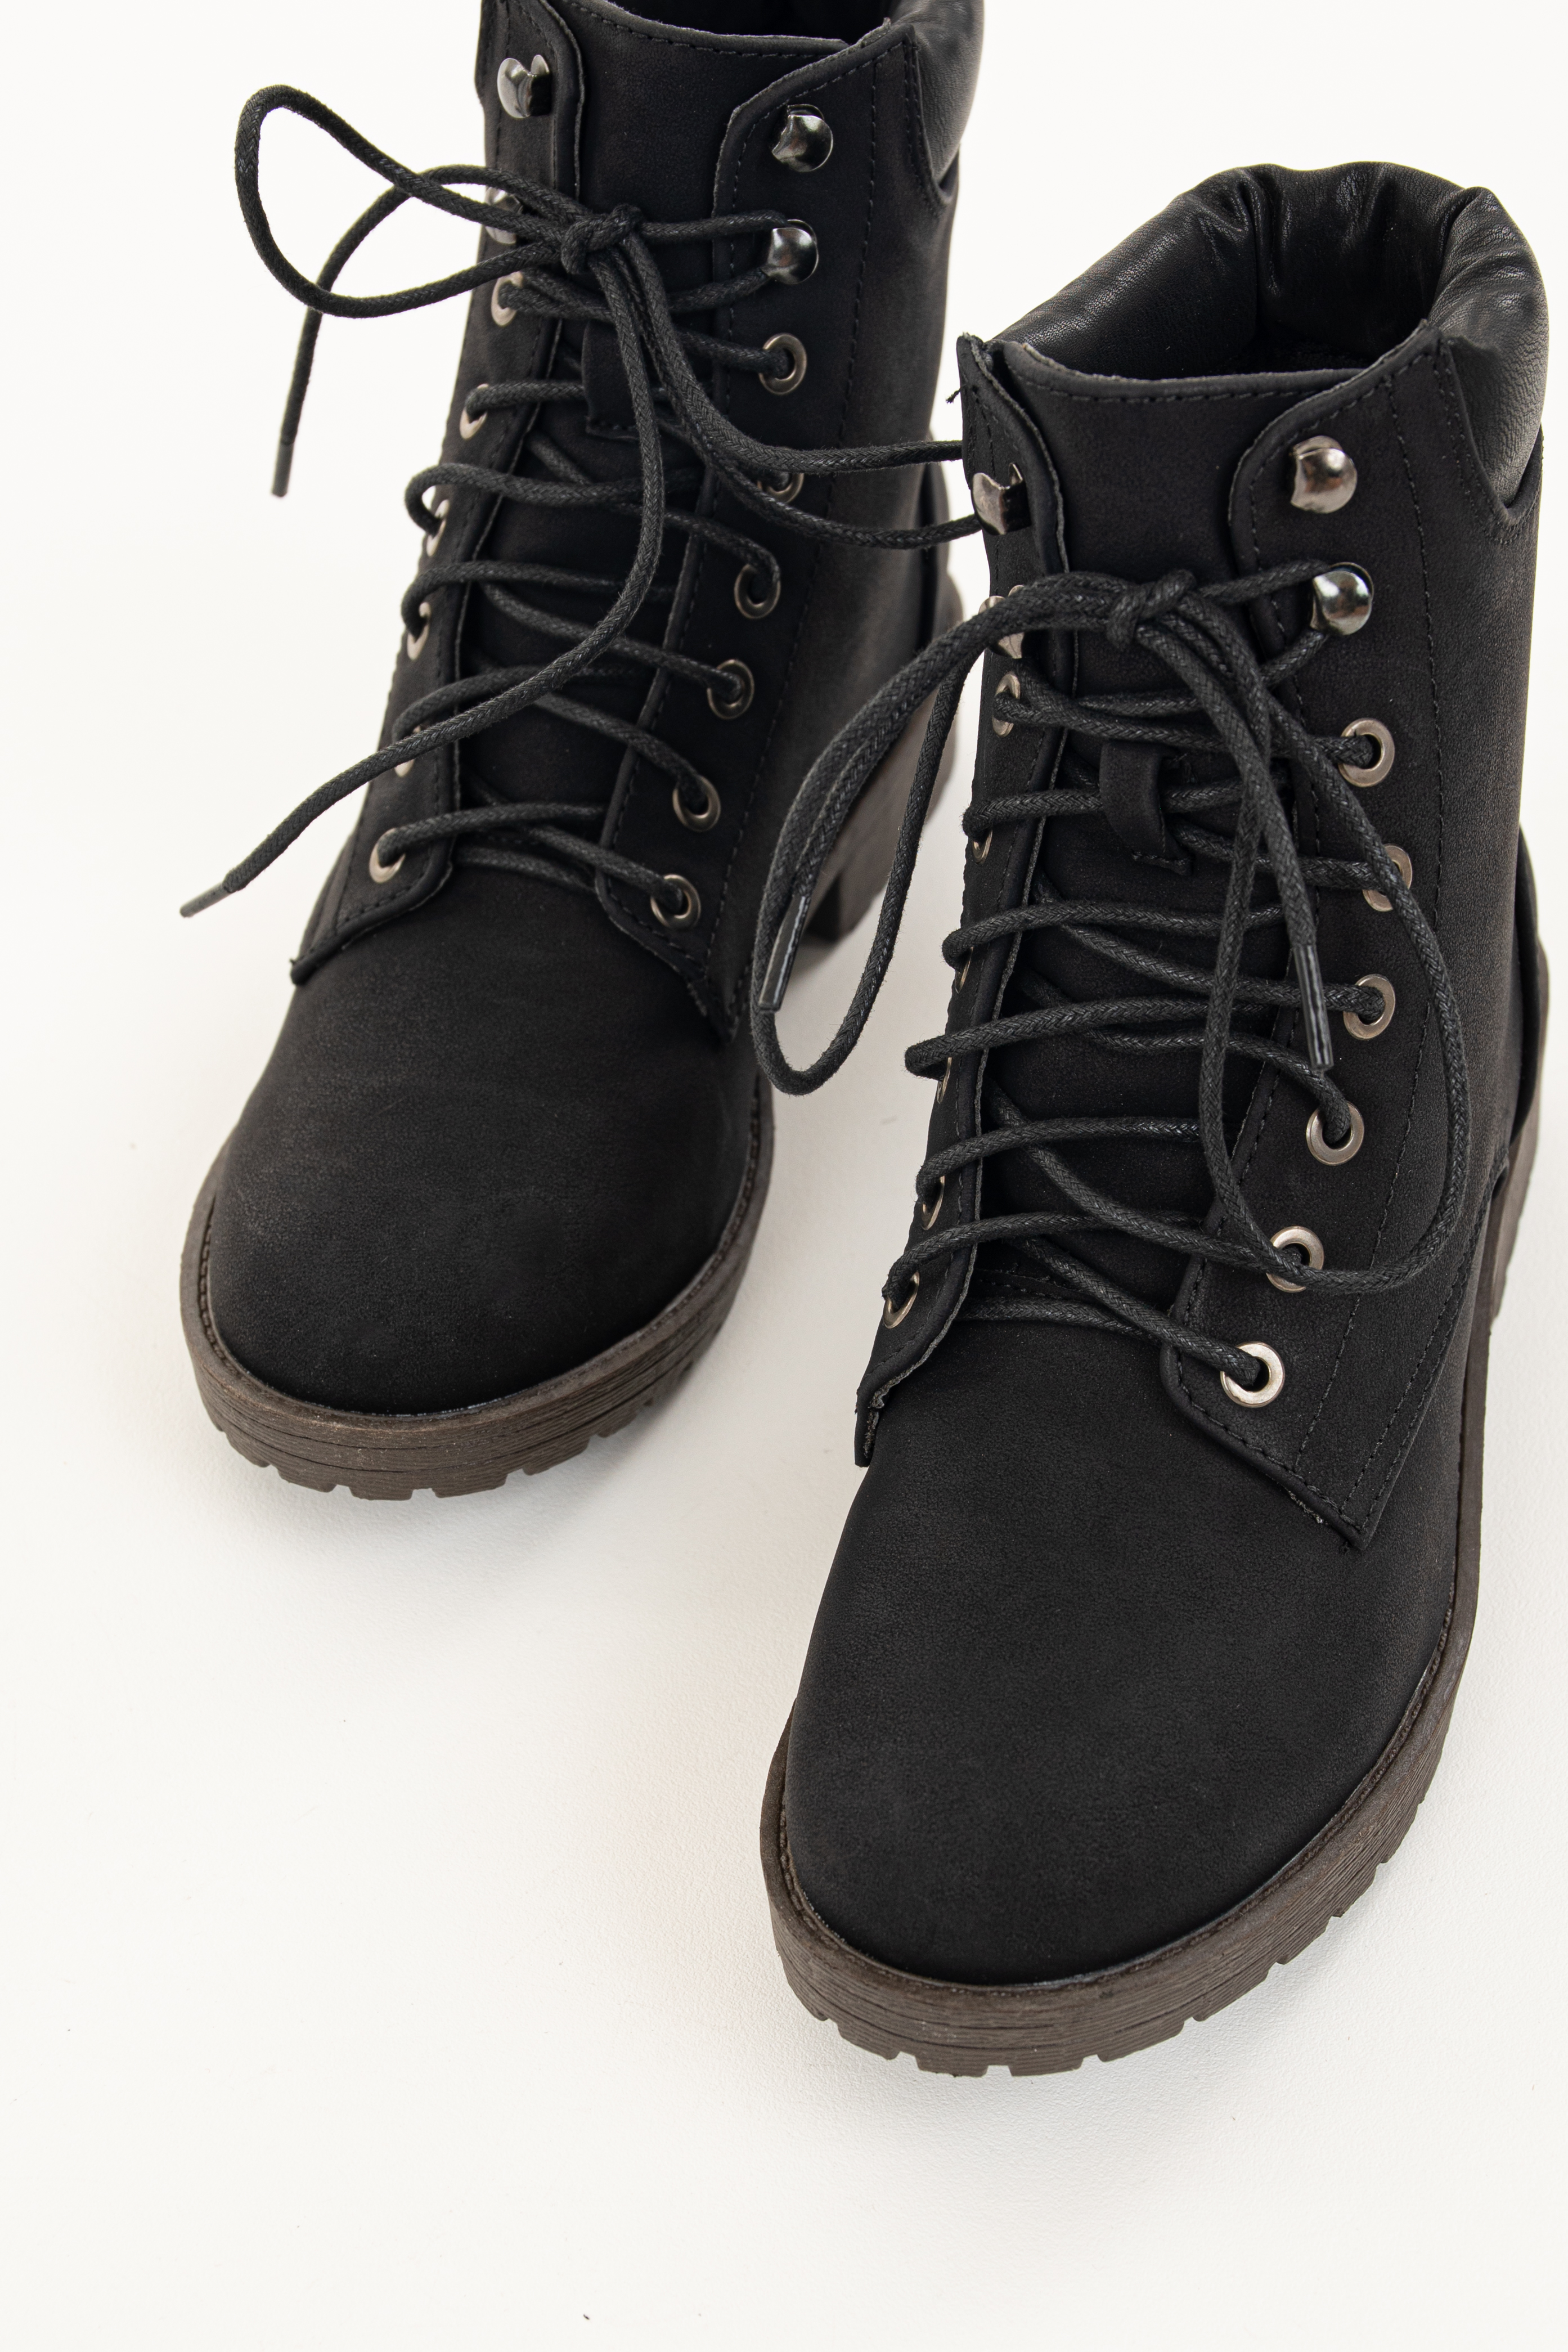 Black Heeled Combat Boots with Lace Up